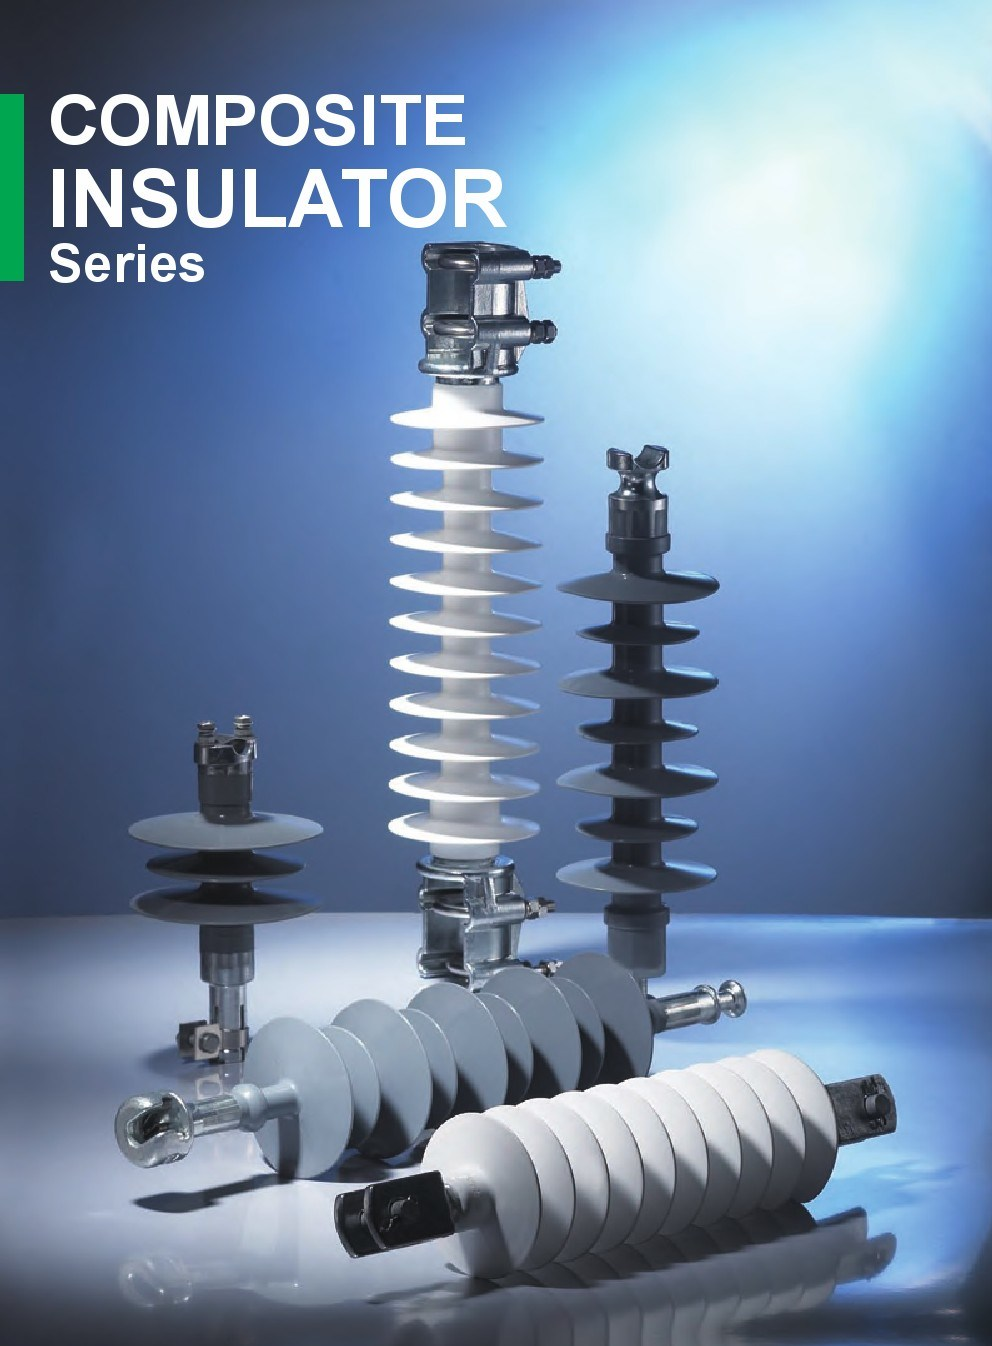 Composite Insulator Series